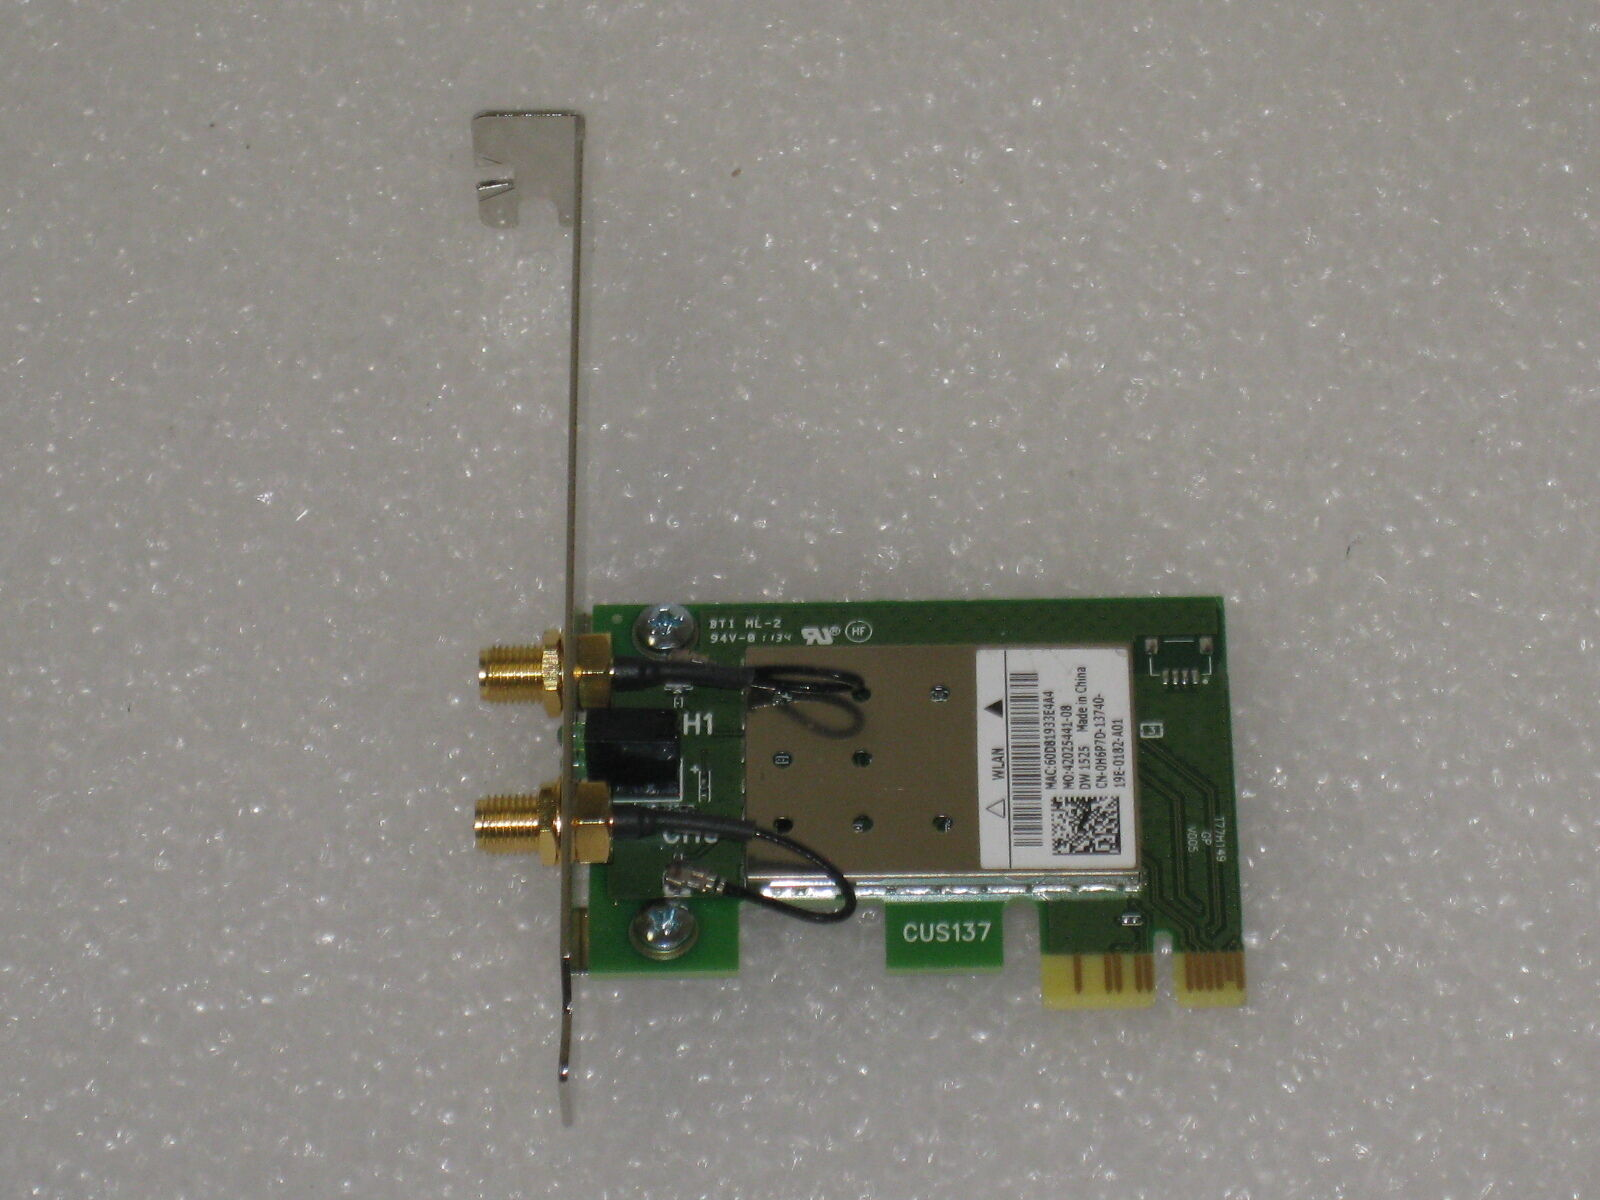 DW1525 WLAN PCIE CARD DRIVER FOR WINDOWS MAC